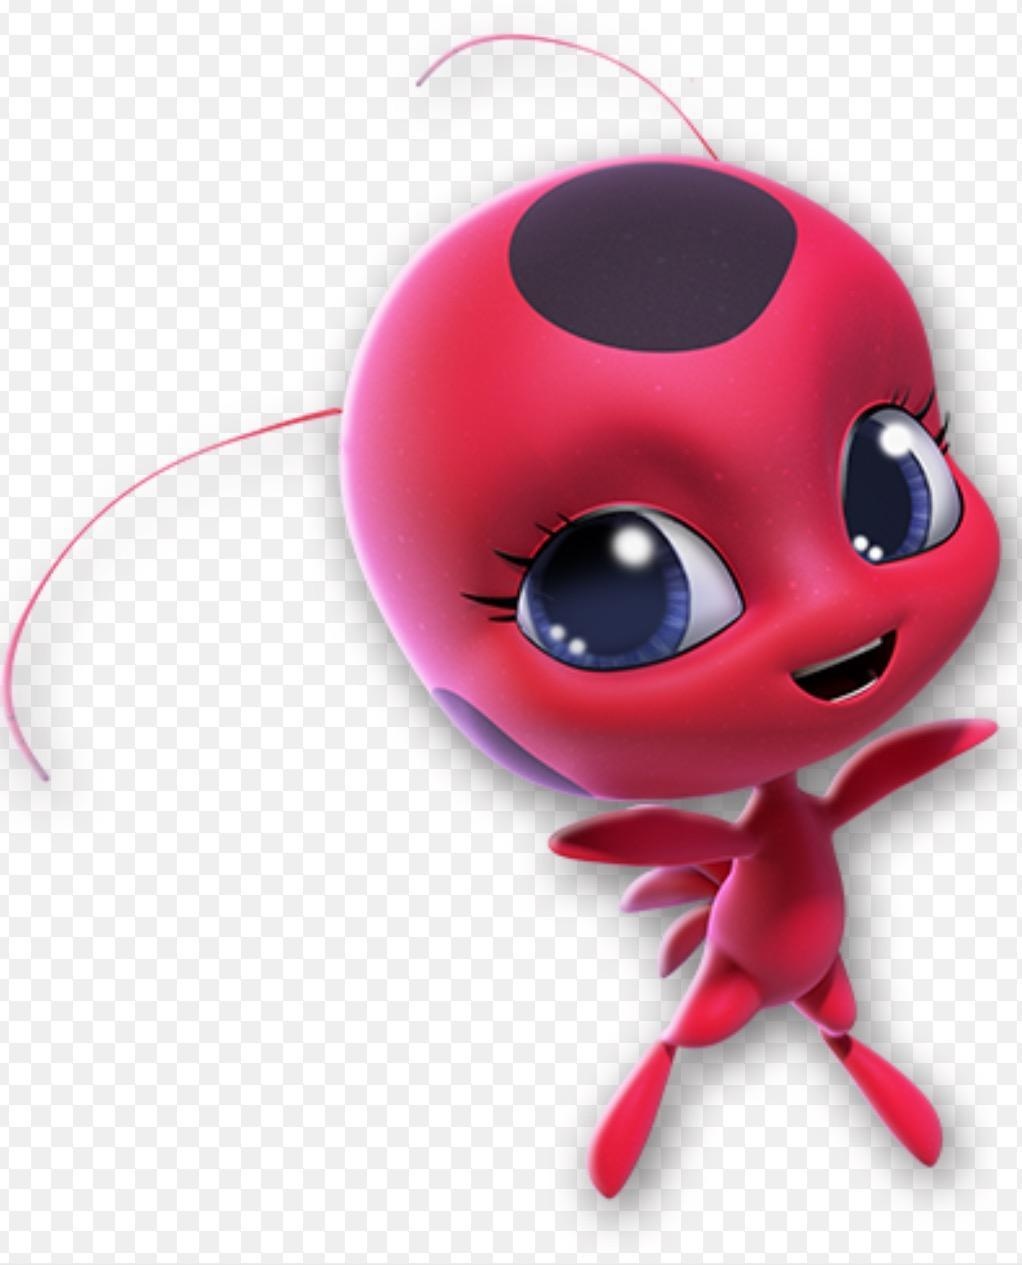 Now, it is the last question. it is a bit weird. Where is the spot on Tikki's head?